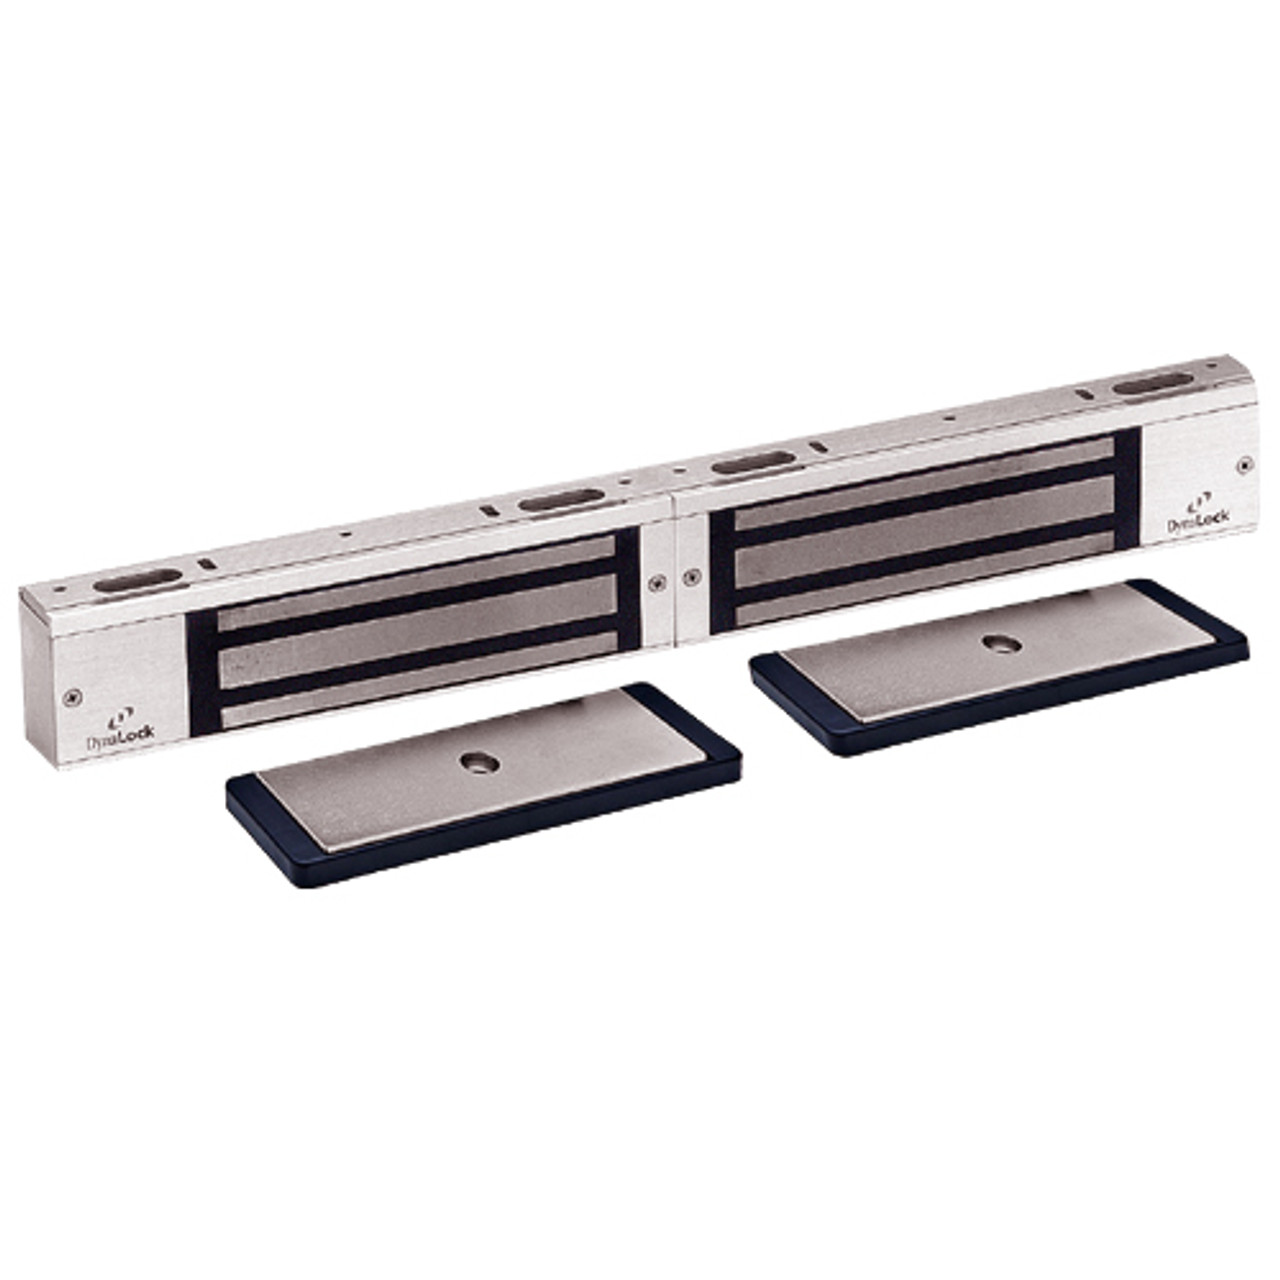 3002TJ32-US28-VOP2 DynaLock 3000 Series 1500 LBs Double Electromagnetic Lock for Inswing Door with Value Option Package in Satin Aluminum